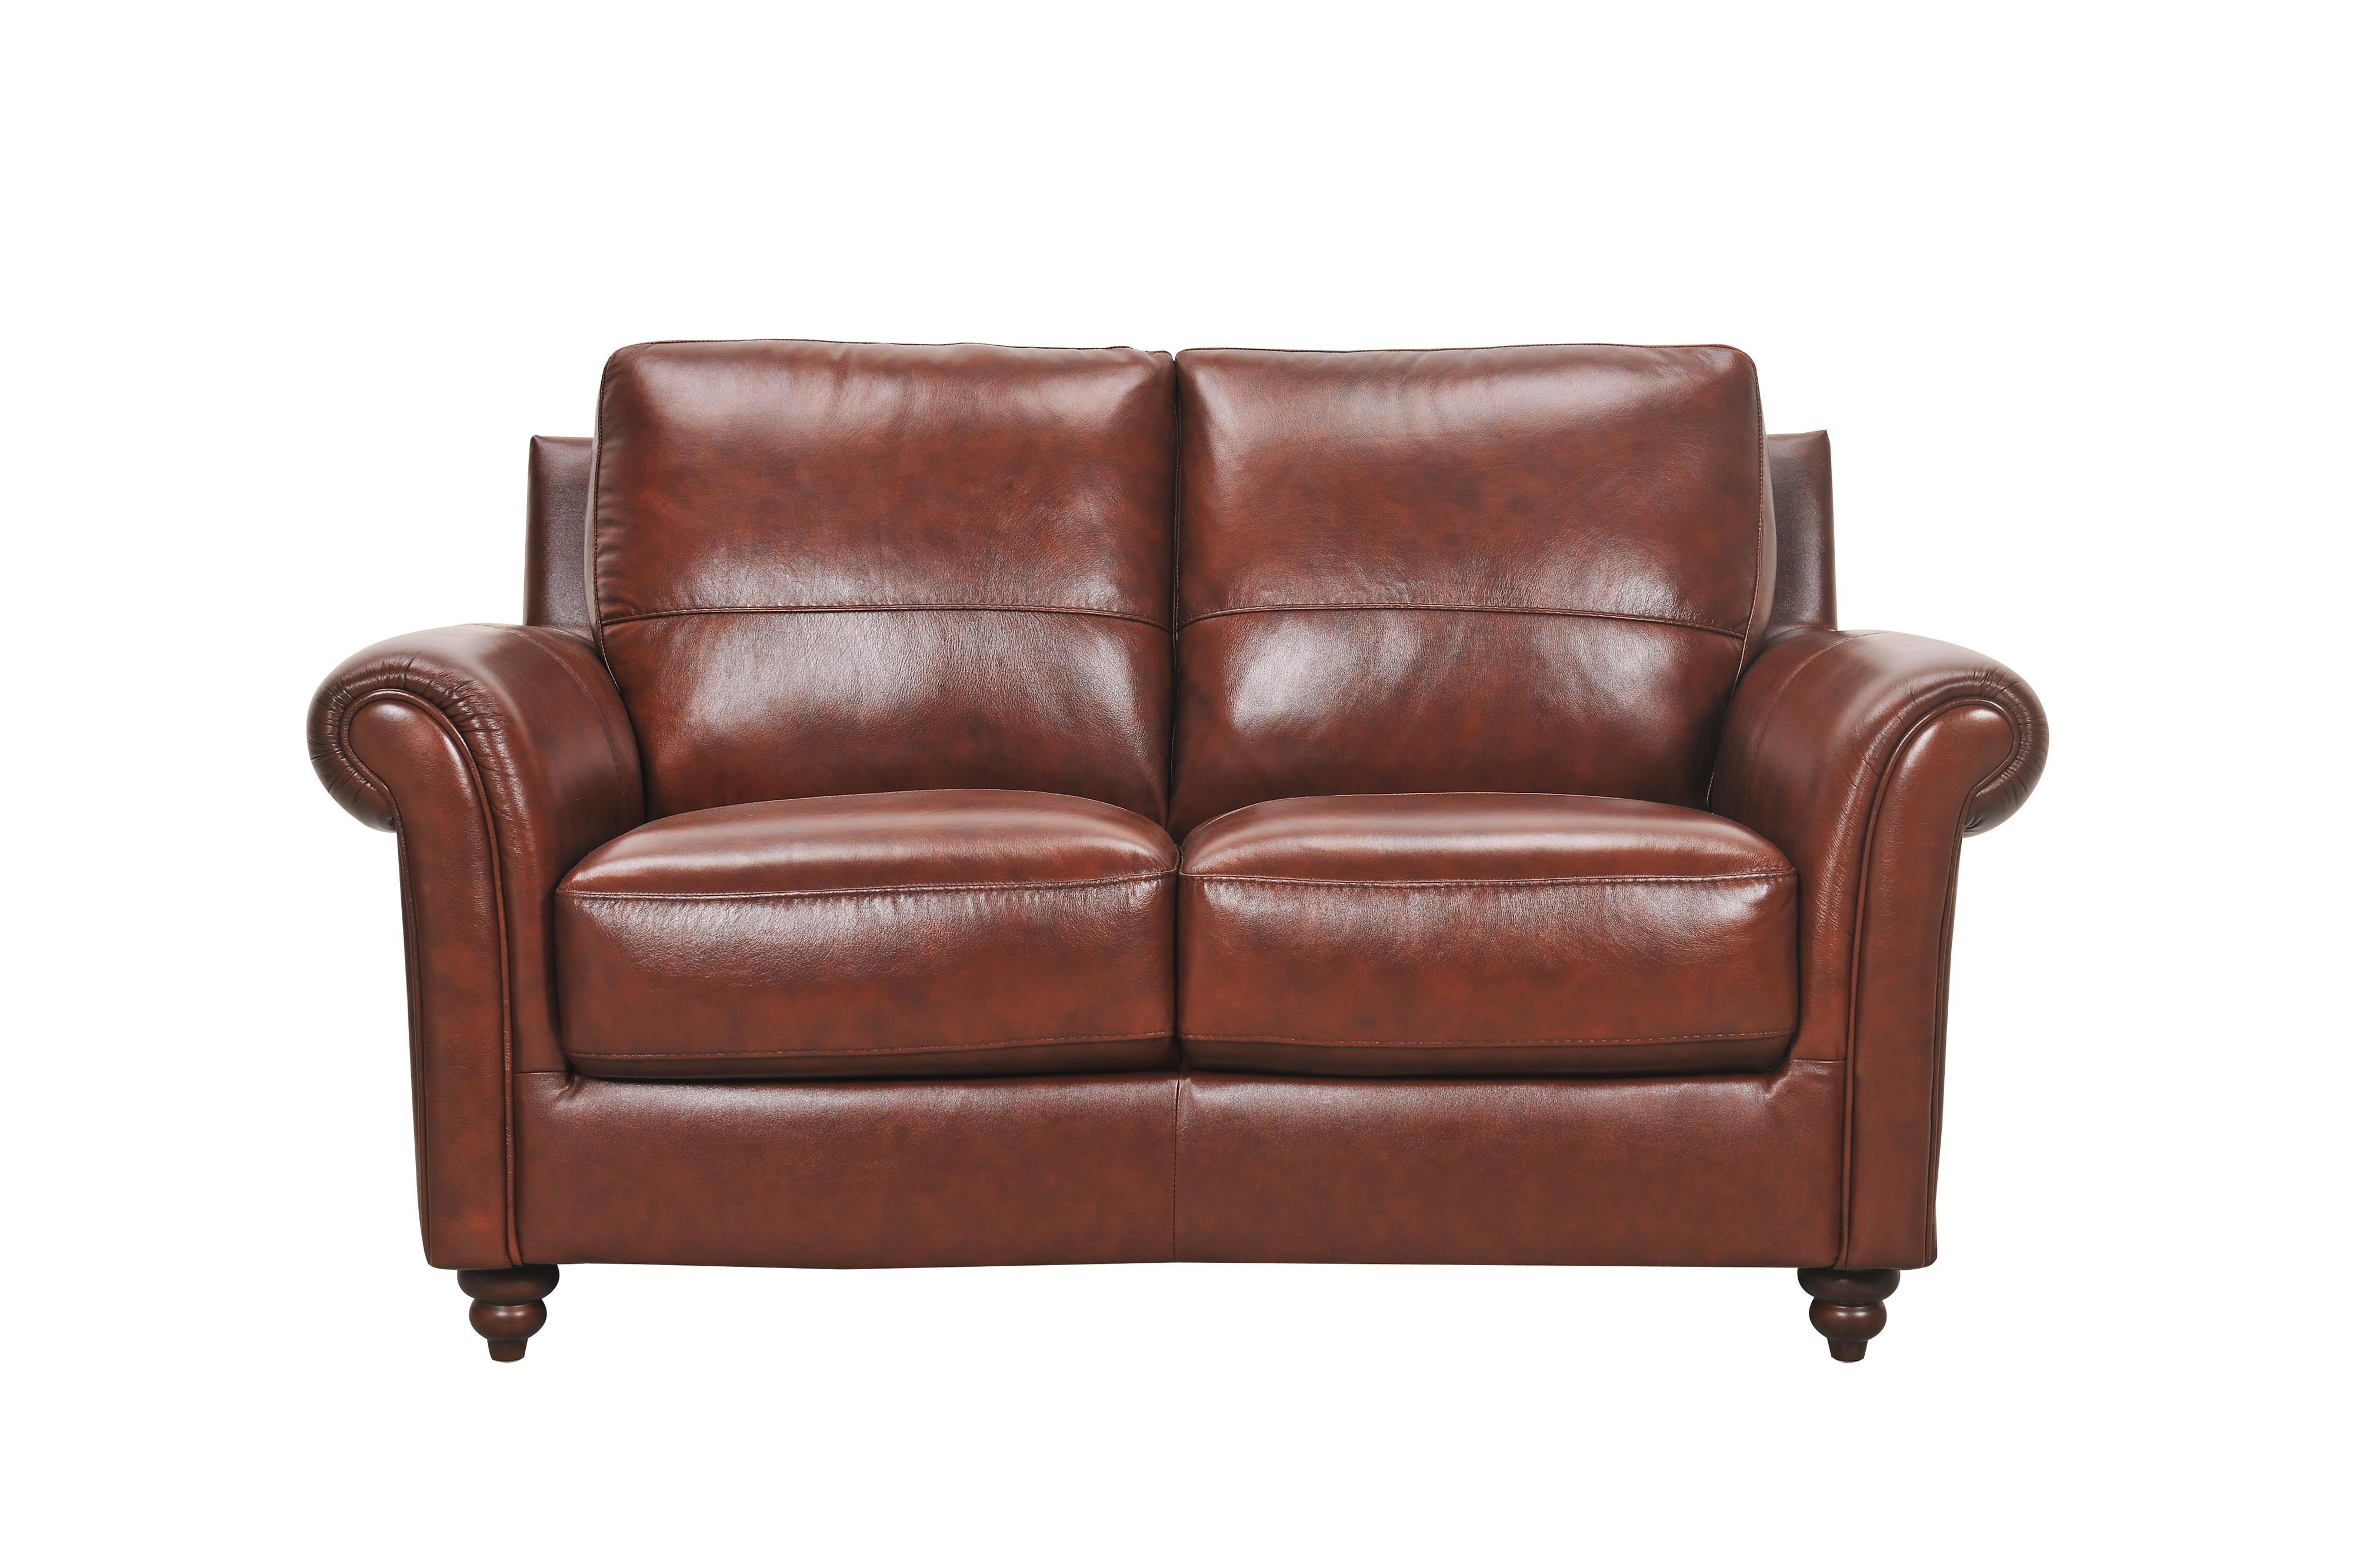 Leather Loveseat with Rolled Arms and Turned Wood Feet